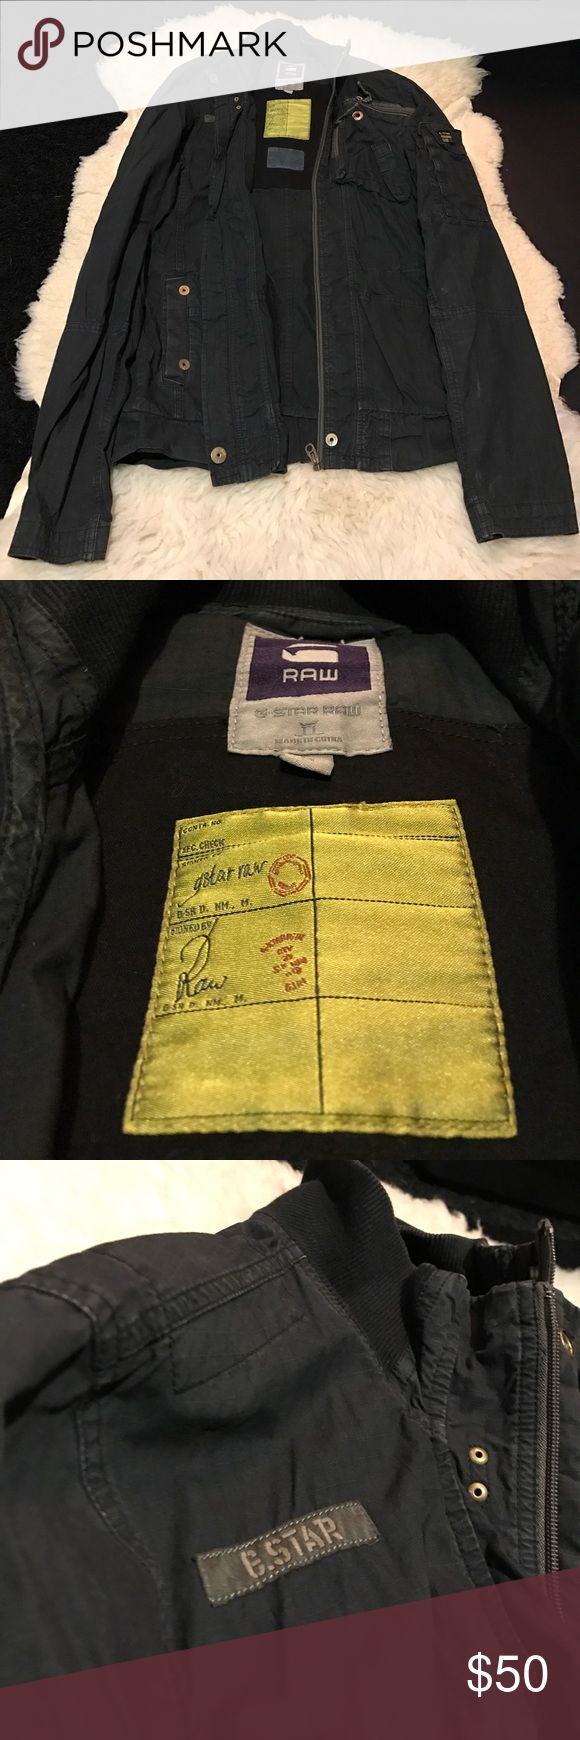 Discontinued G Star Raw Over Shirt Jacket This is a G Star Raw Over shirt Jacket. It is slightly worn but still holds its true badassery in tact. G-Star Jackets & Coats